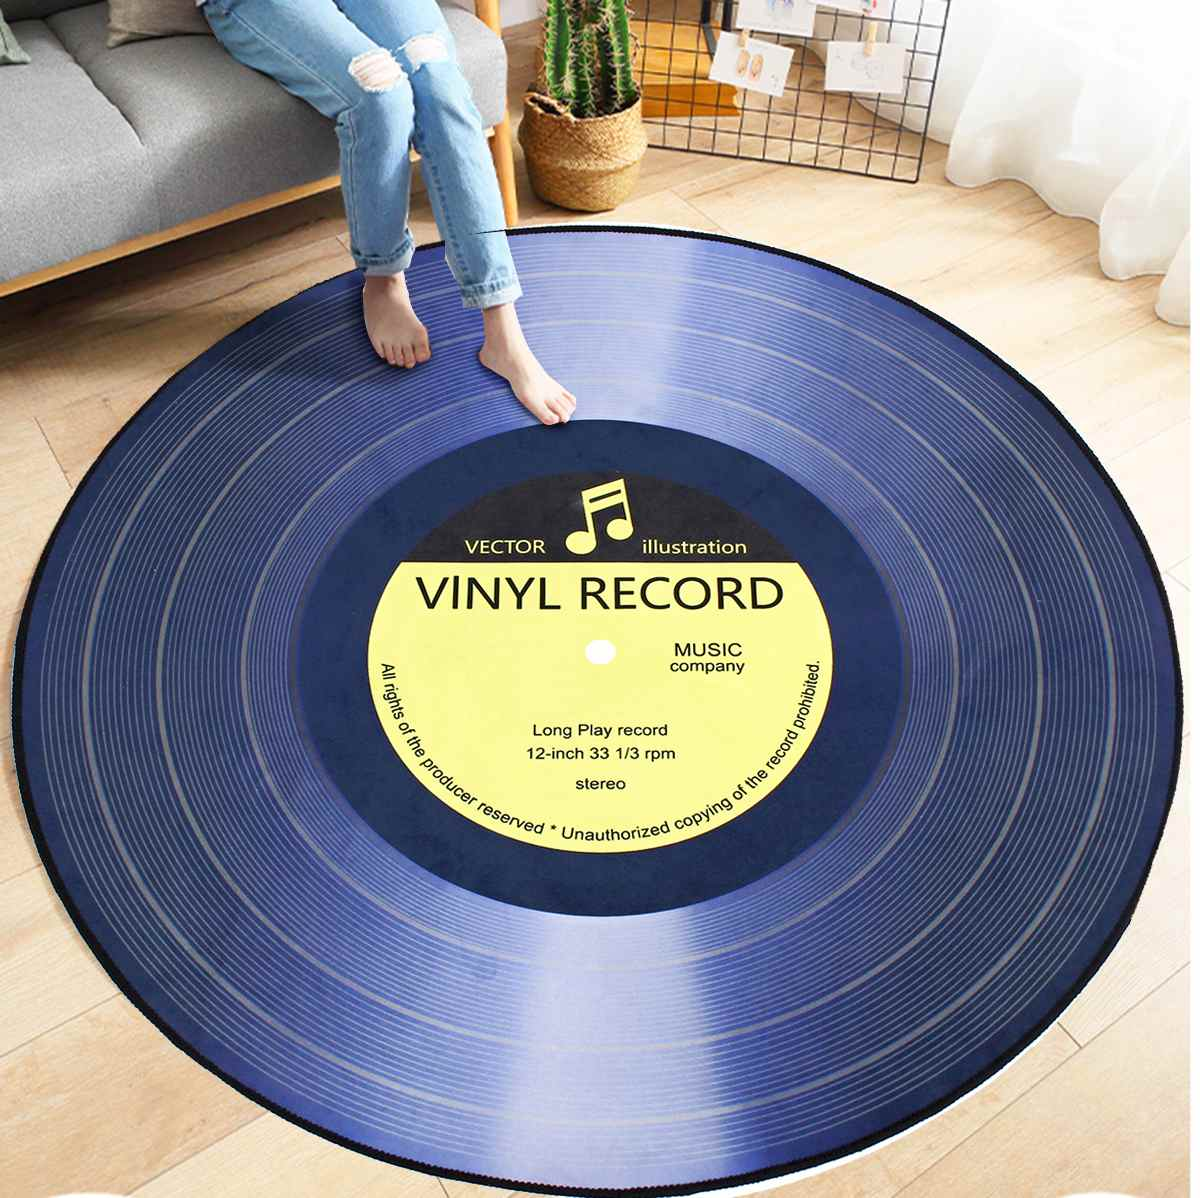 4 Types Round Carpet Rugs 3D Vinyl Record Printed Carpets Floor Mat For Bedroom Living Room Anti Slip Home Decoration